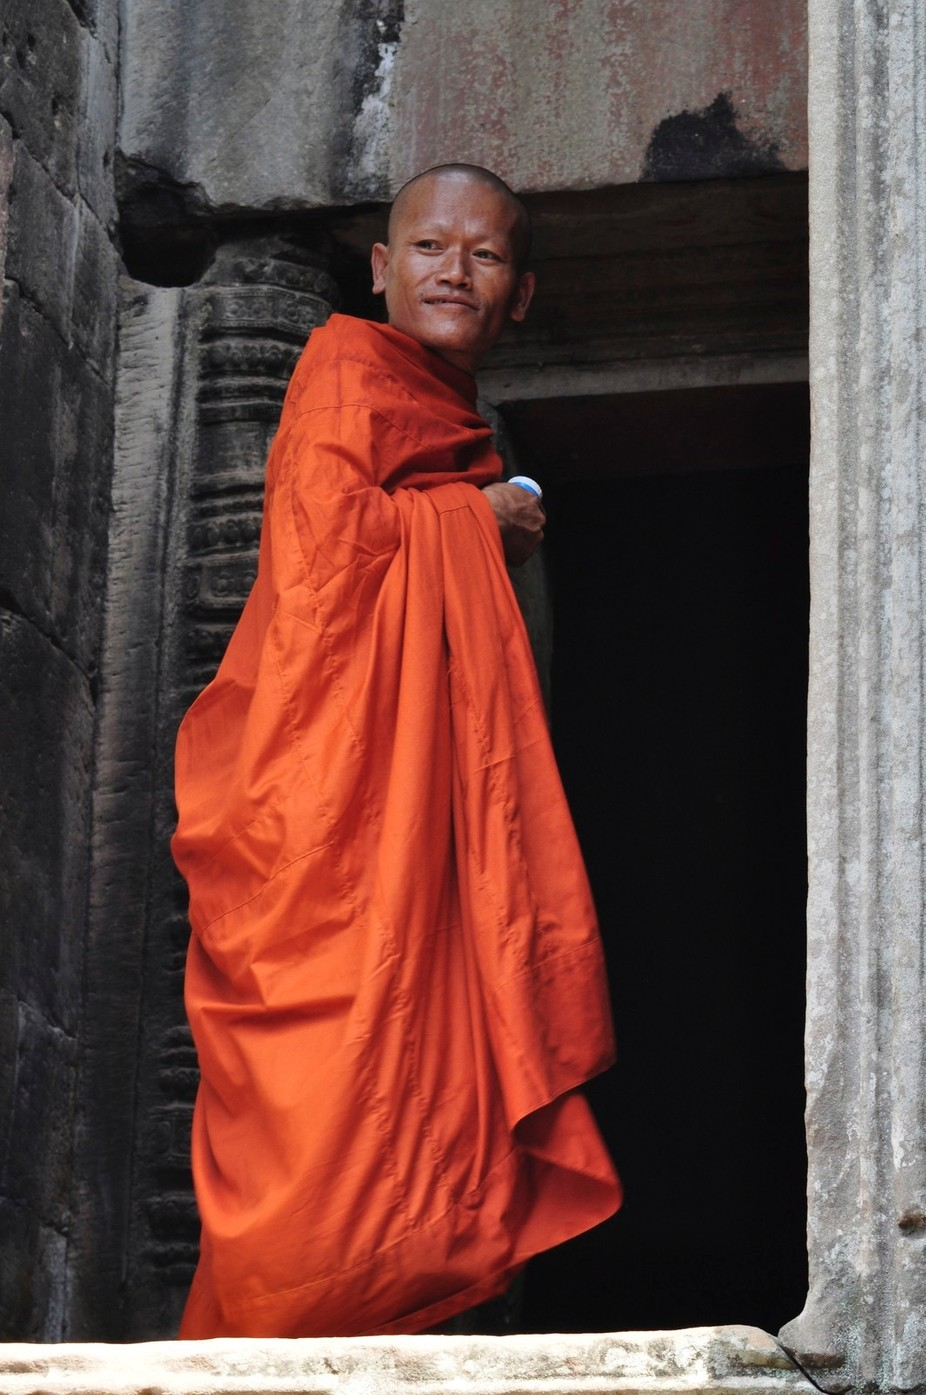 A young Buddhist monk at Angkhor Wat observes the foreign visitors